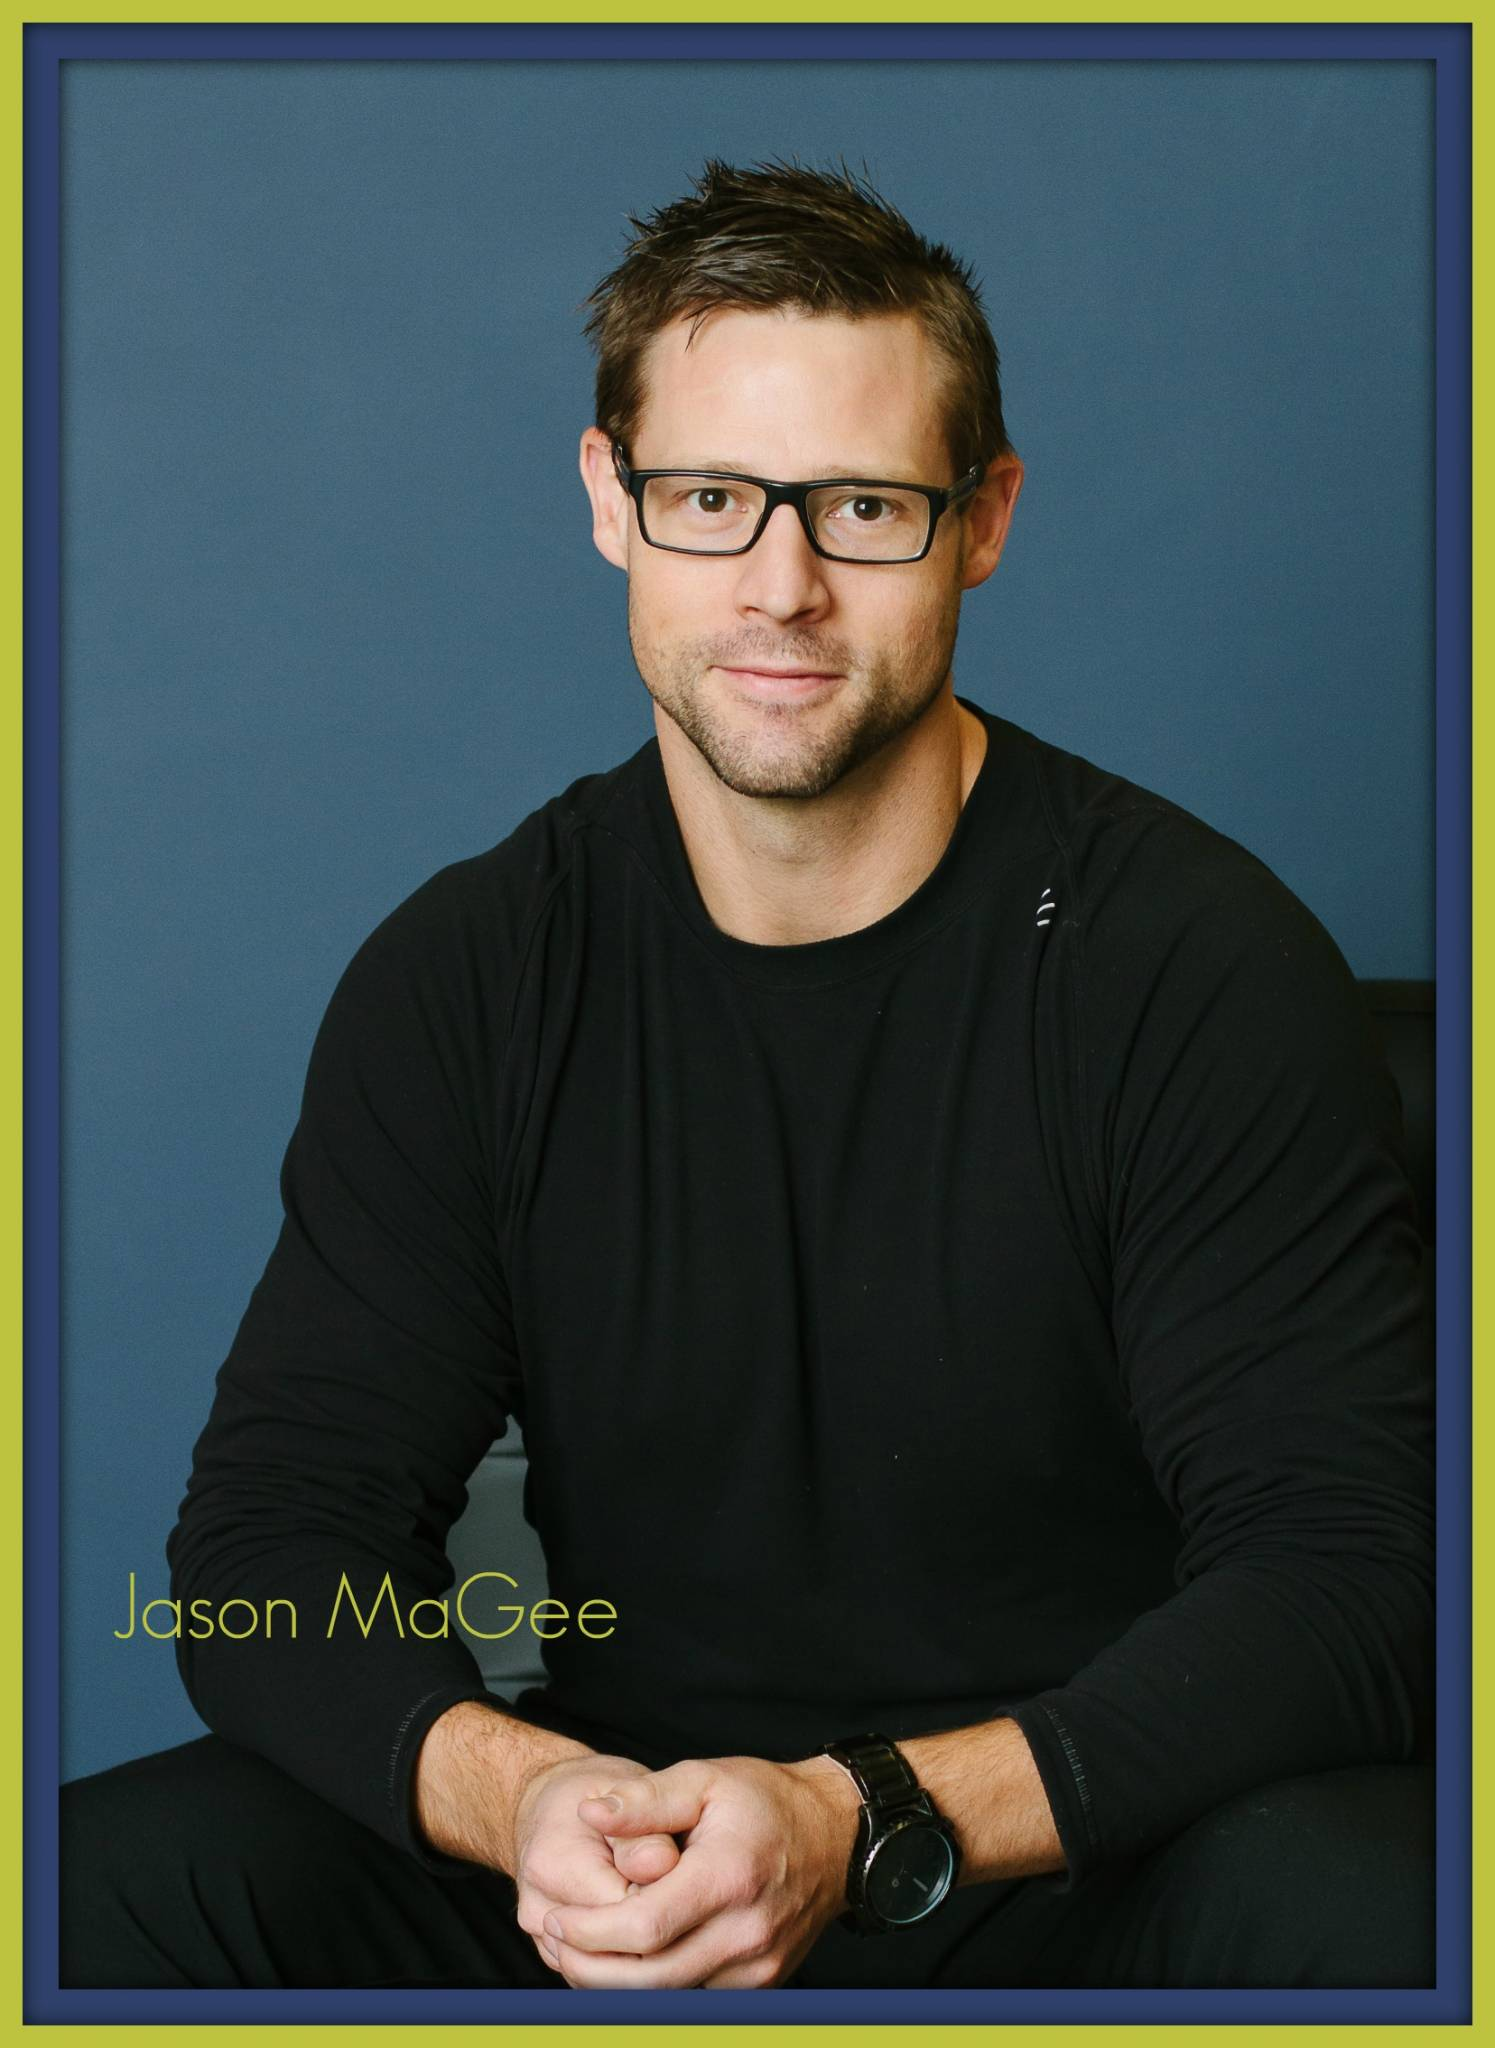 jason-edit-1 Jason MaGee discusses why IMS is extremely effective for acute and chronic pain. back pain chronic pain dry needling IMS intramuscular stimulation neck pain pain